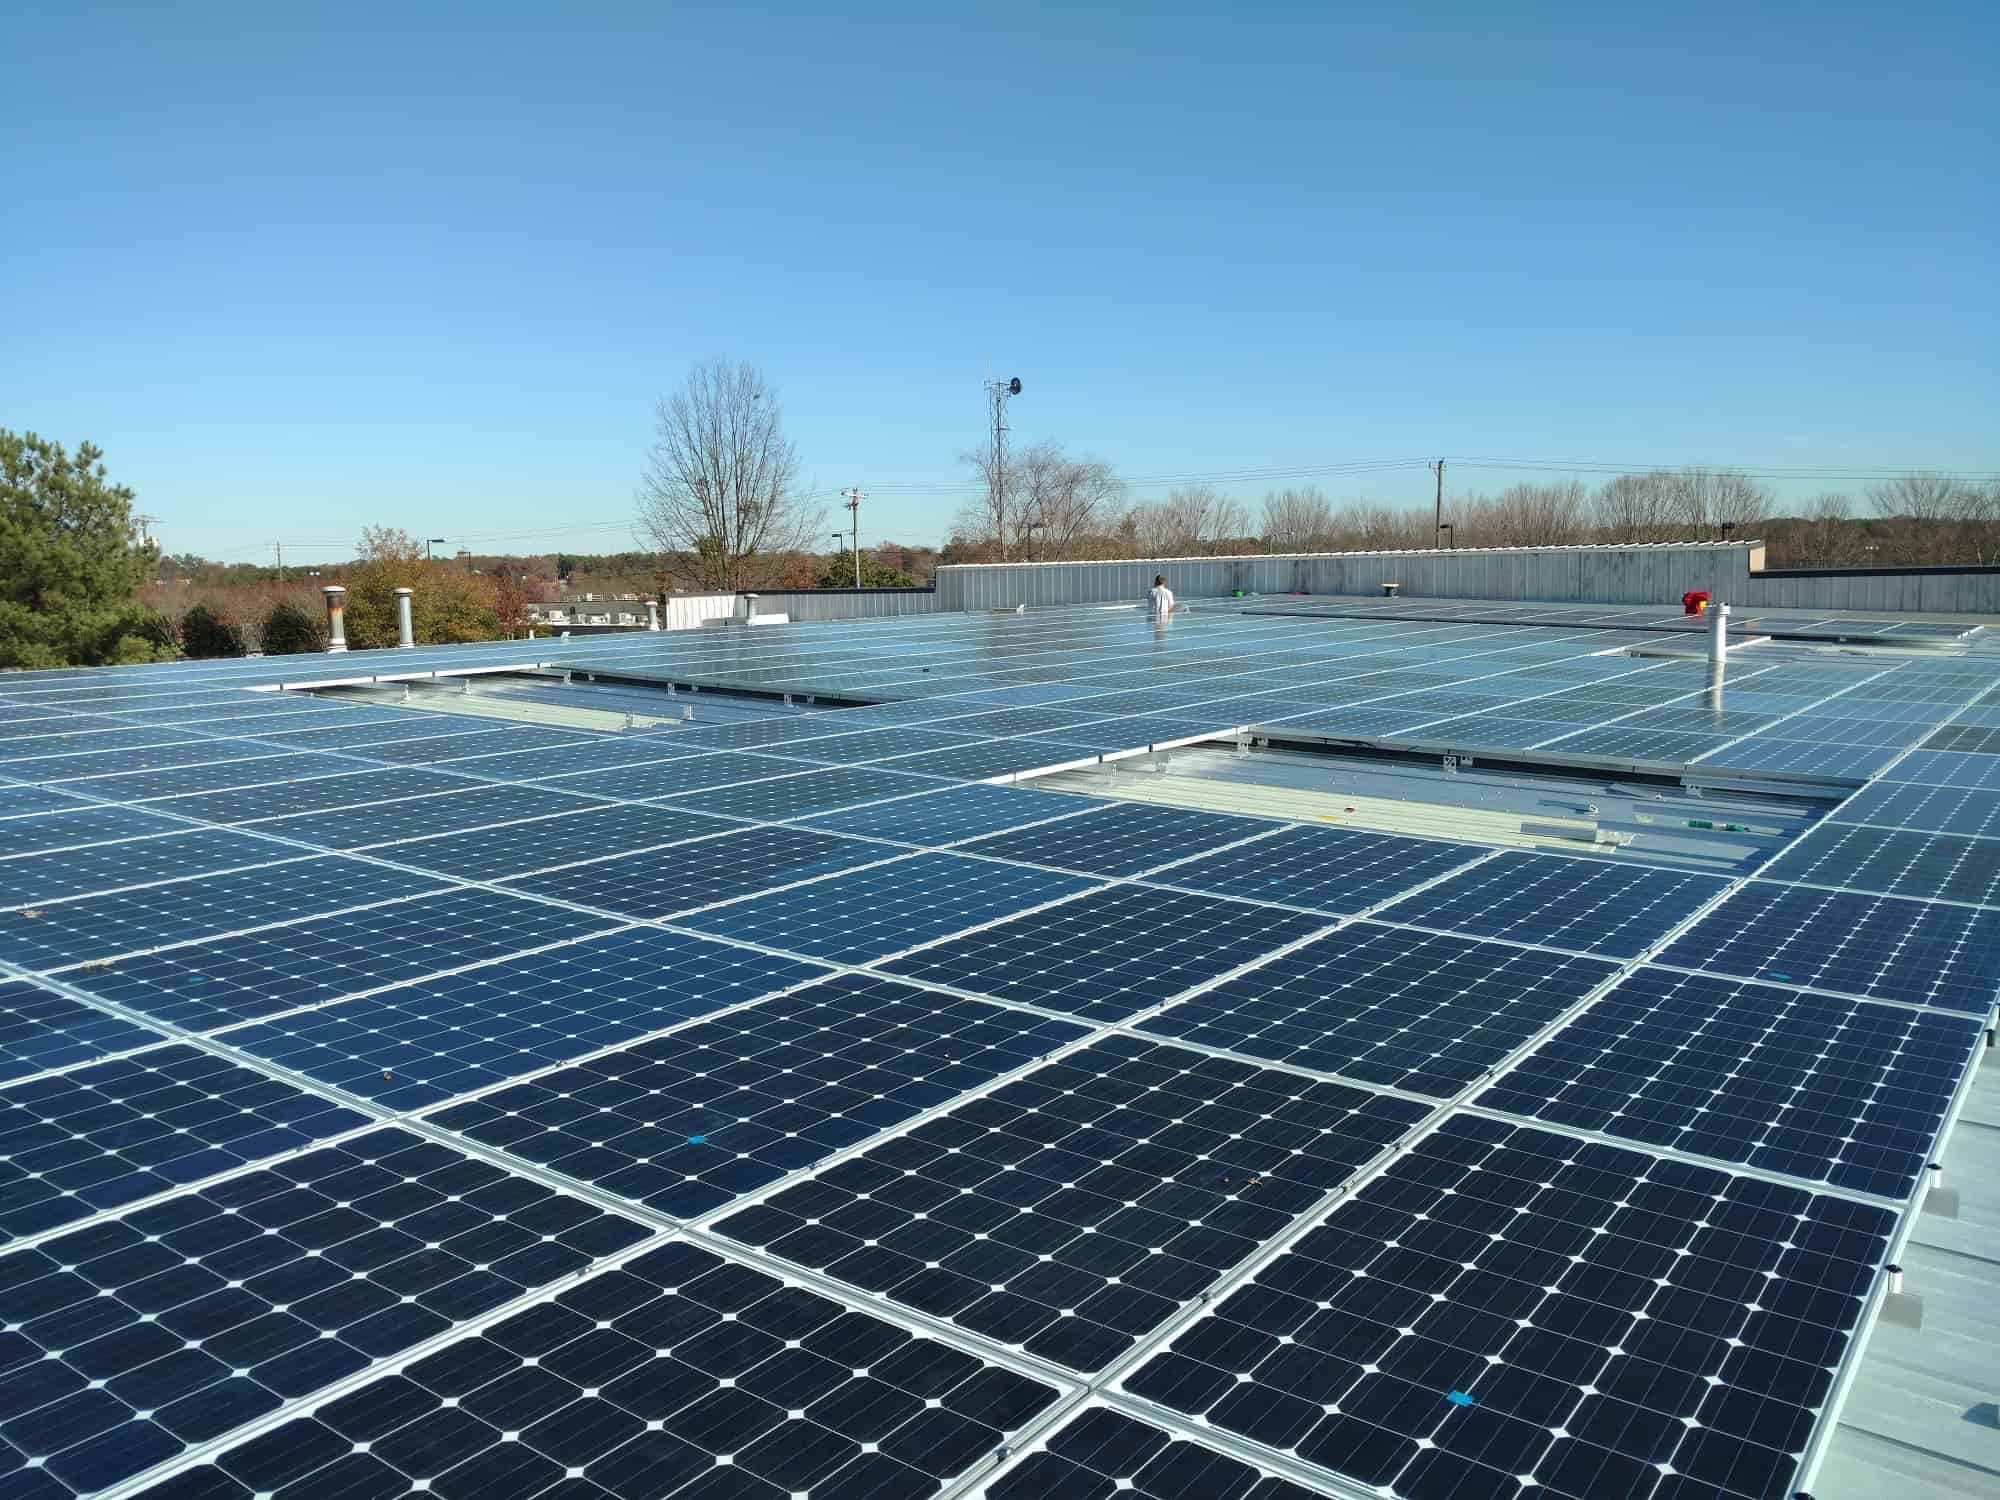 Commercial metal rooftop solar panel installation